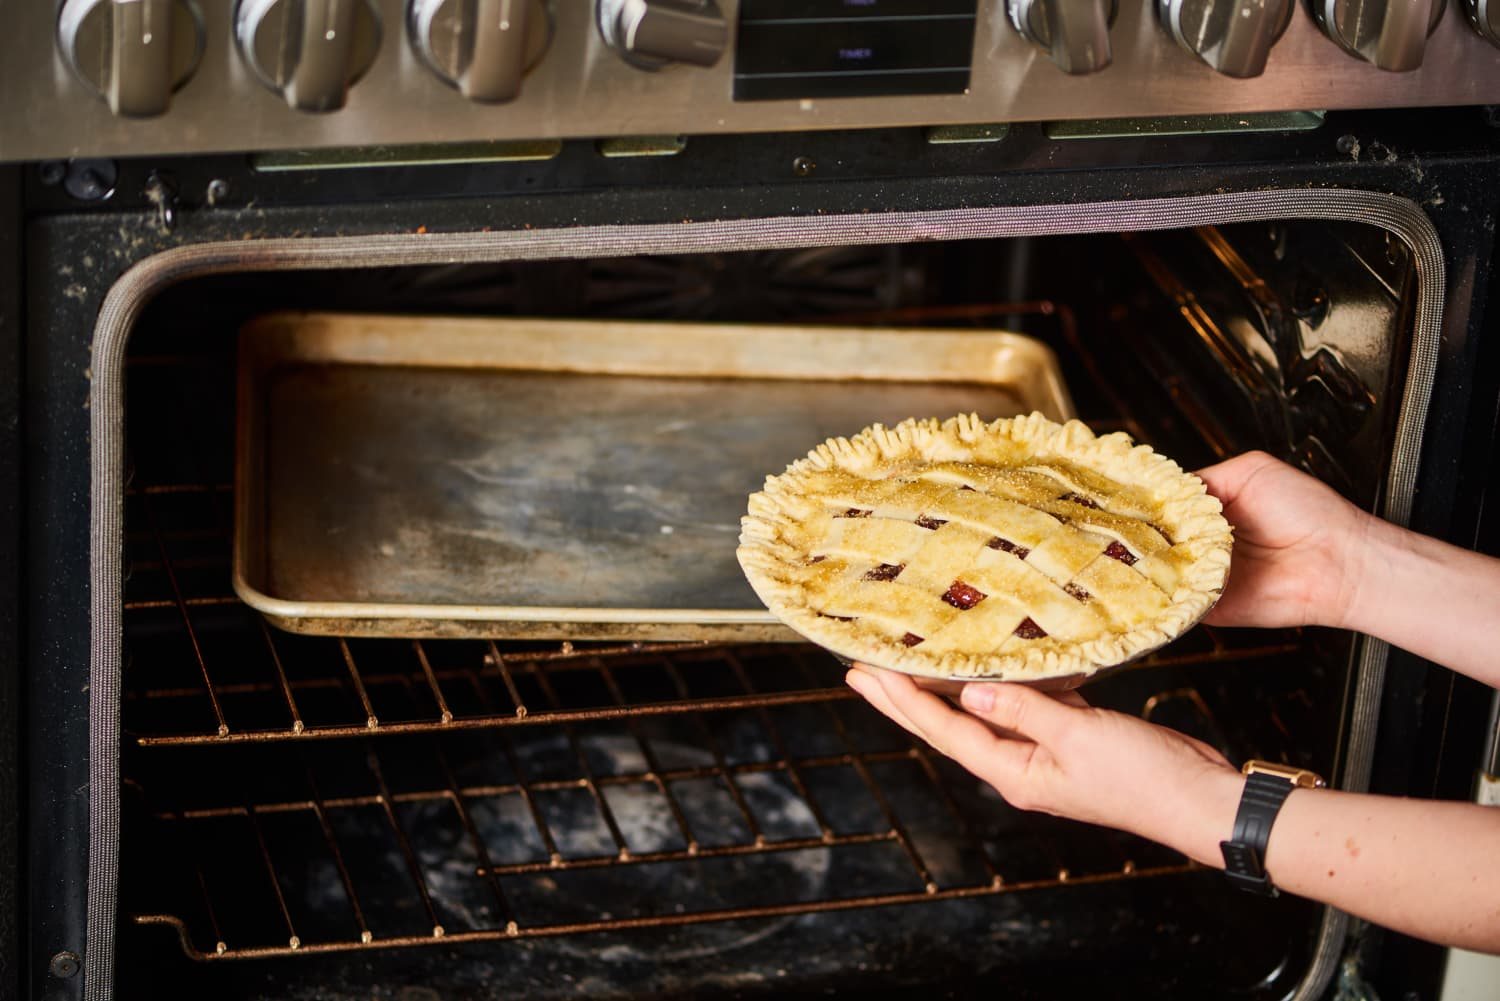 4 Things People With Impossibly-Clean Ovens Always Do